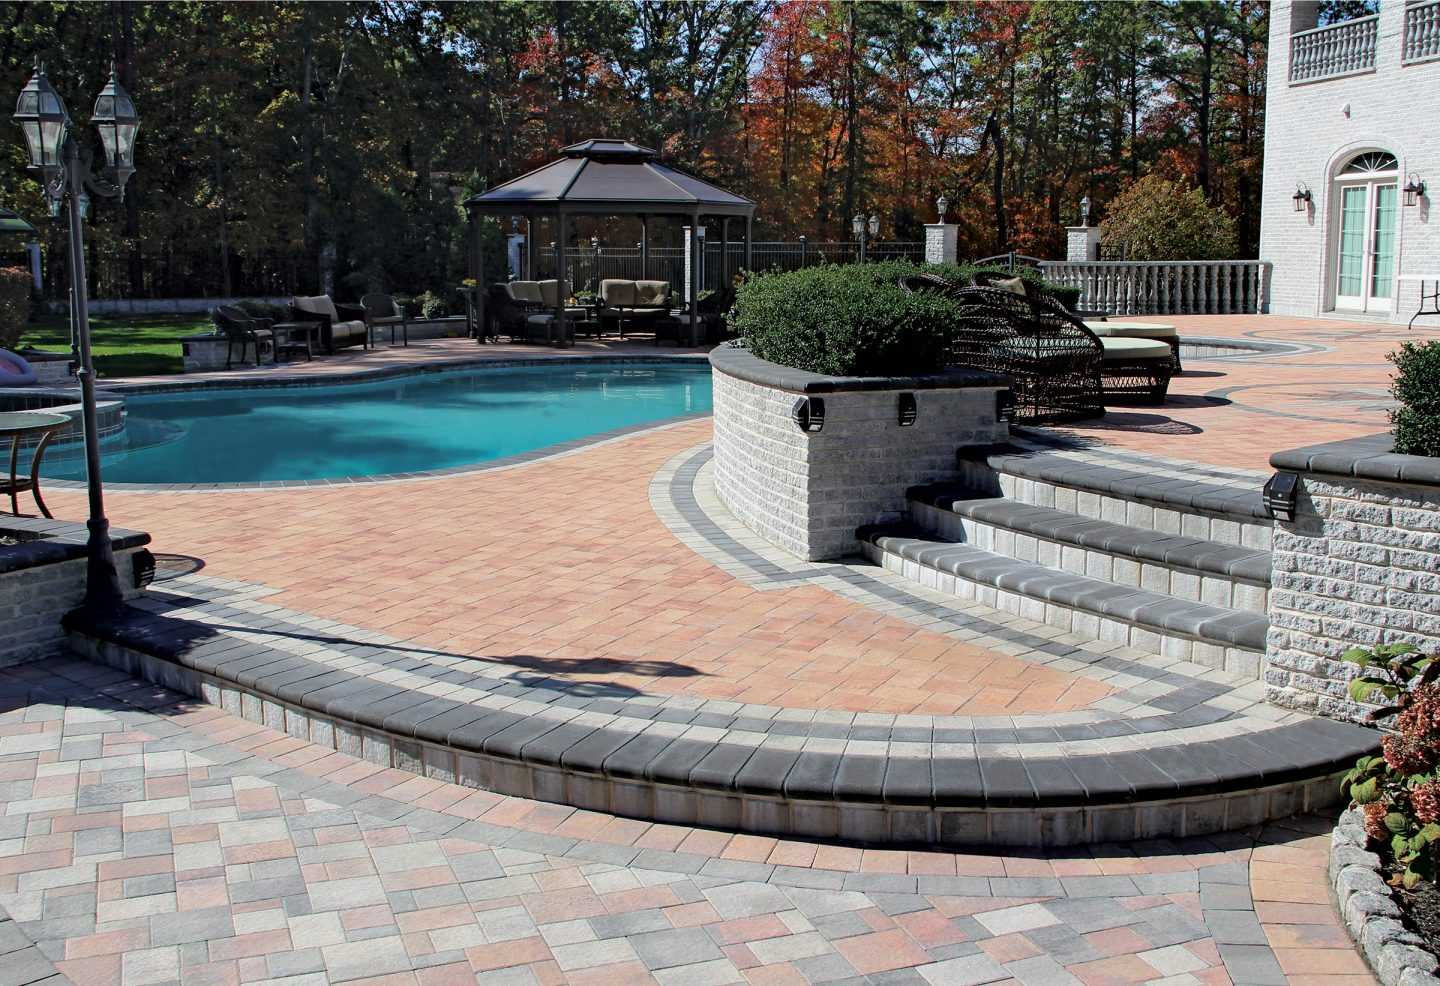 Paver-Block-Patio-near-Pool-with-Retaining-Wall-and-Stairs